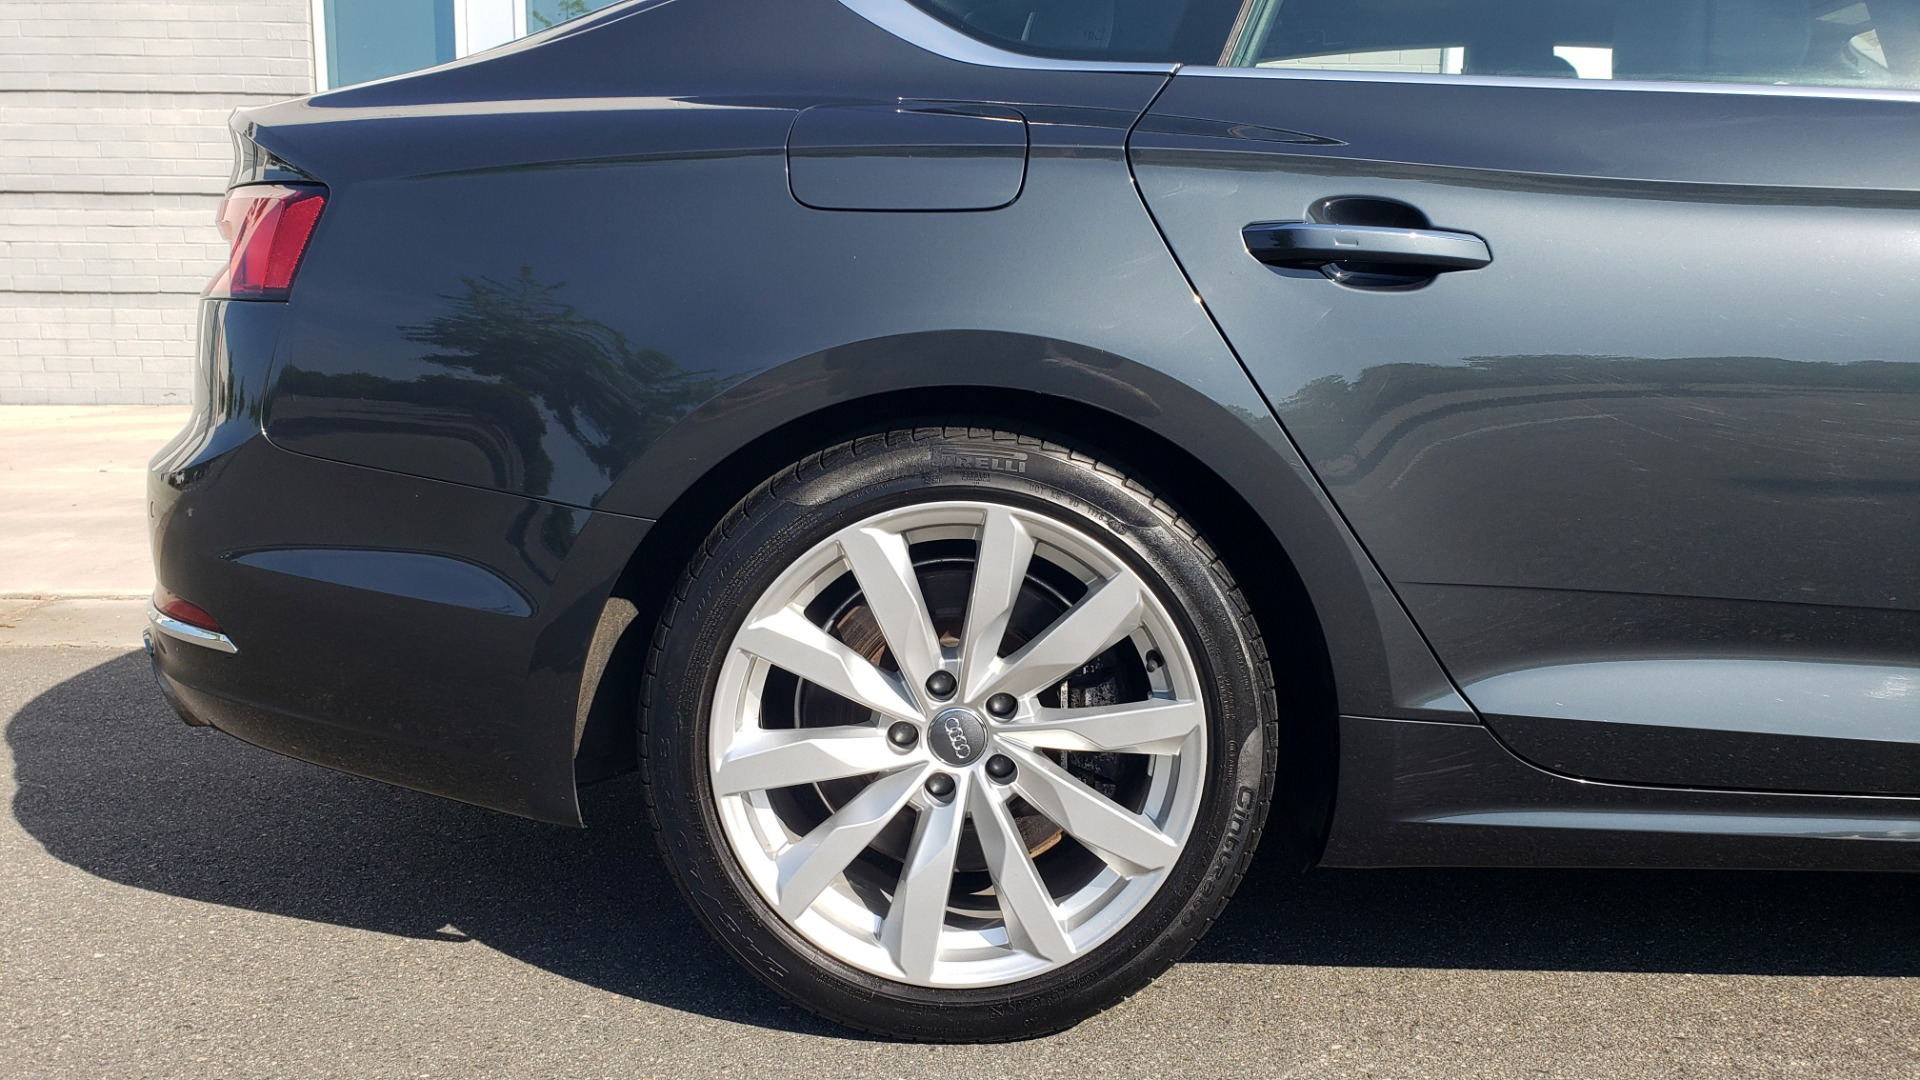 Used 2018 Audi A5 SPORTBACK PREMIUM PLUS 2.0T / AWD / NAV / B&O SND / SUNROOF / REARVIEW for sale Sold at Formula Imports in Charlotte NC 28227 15